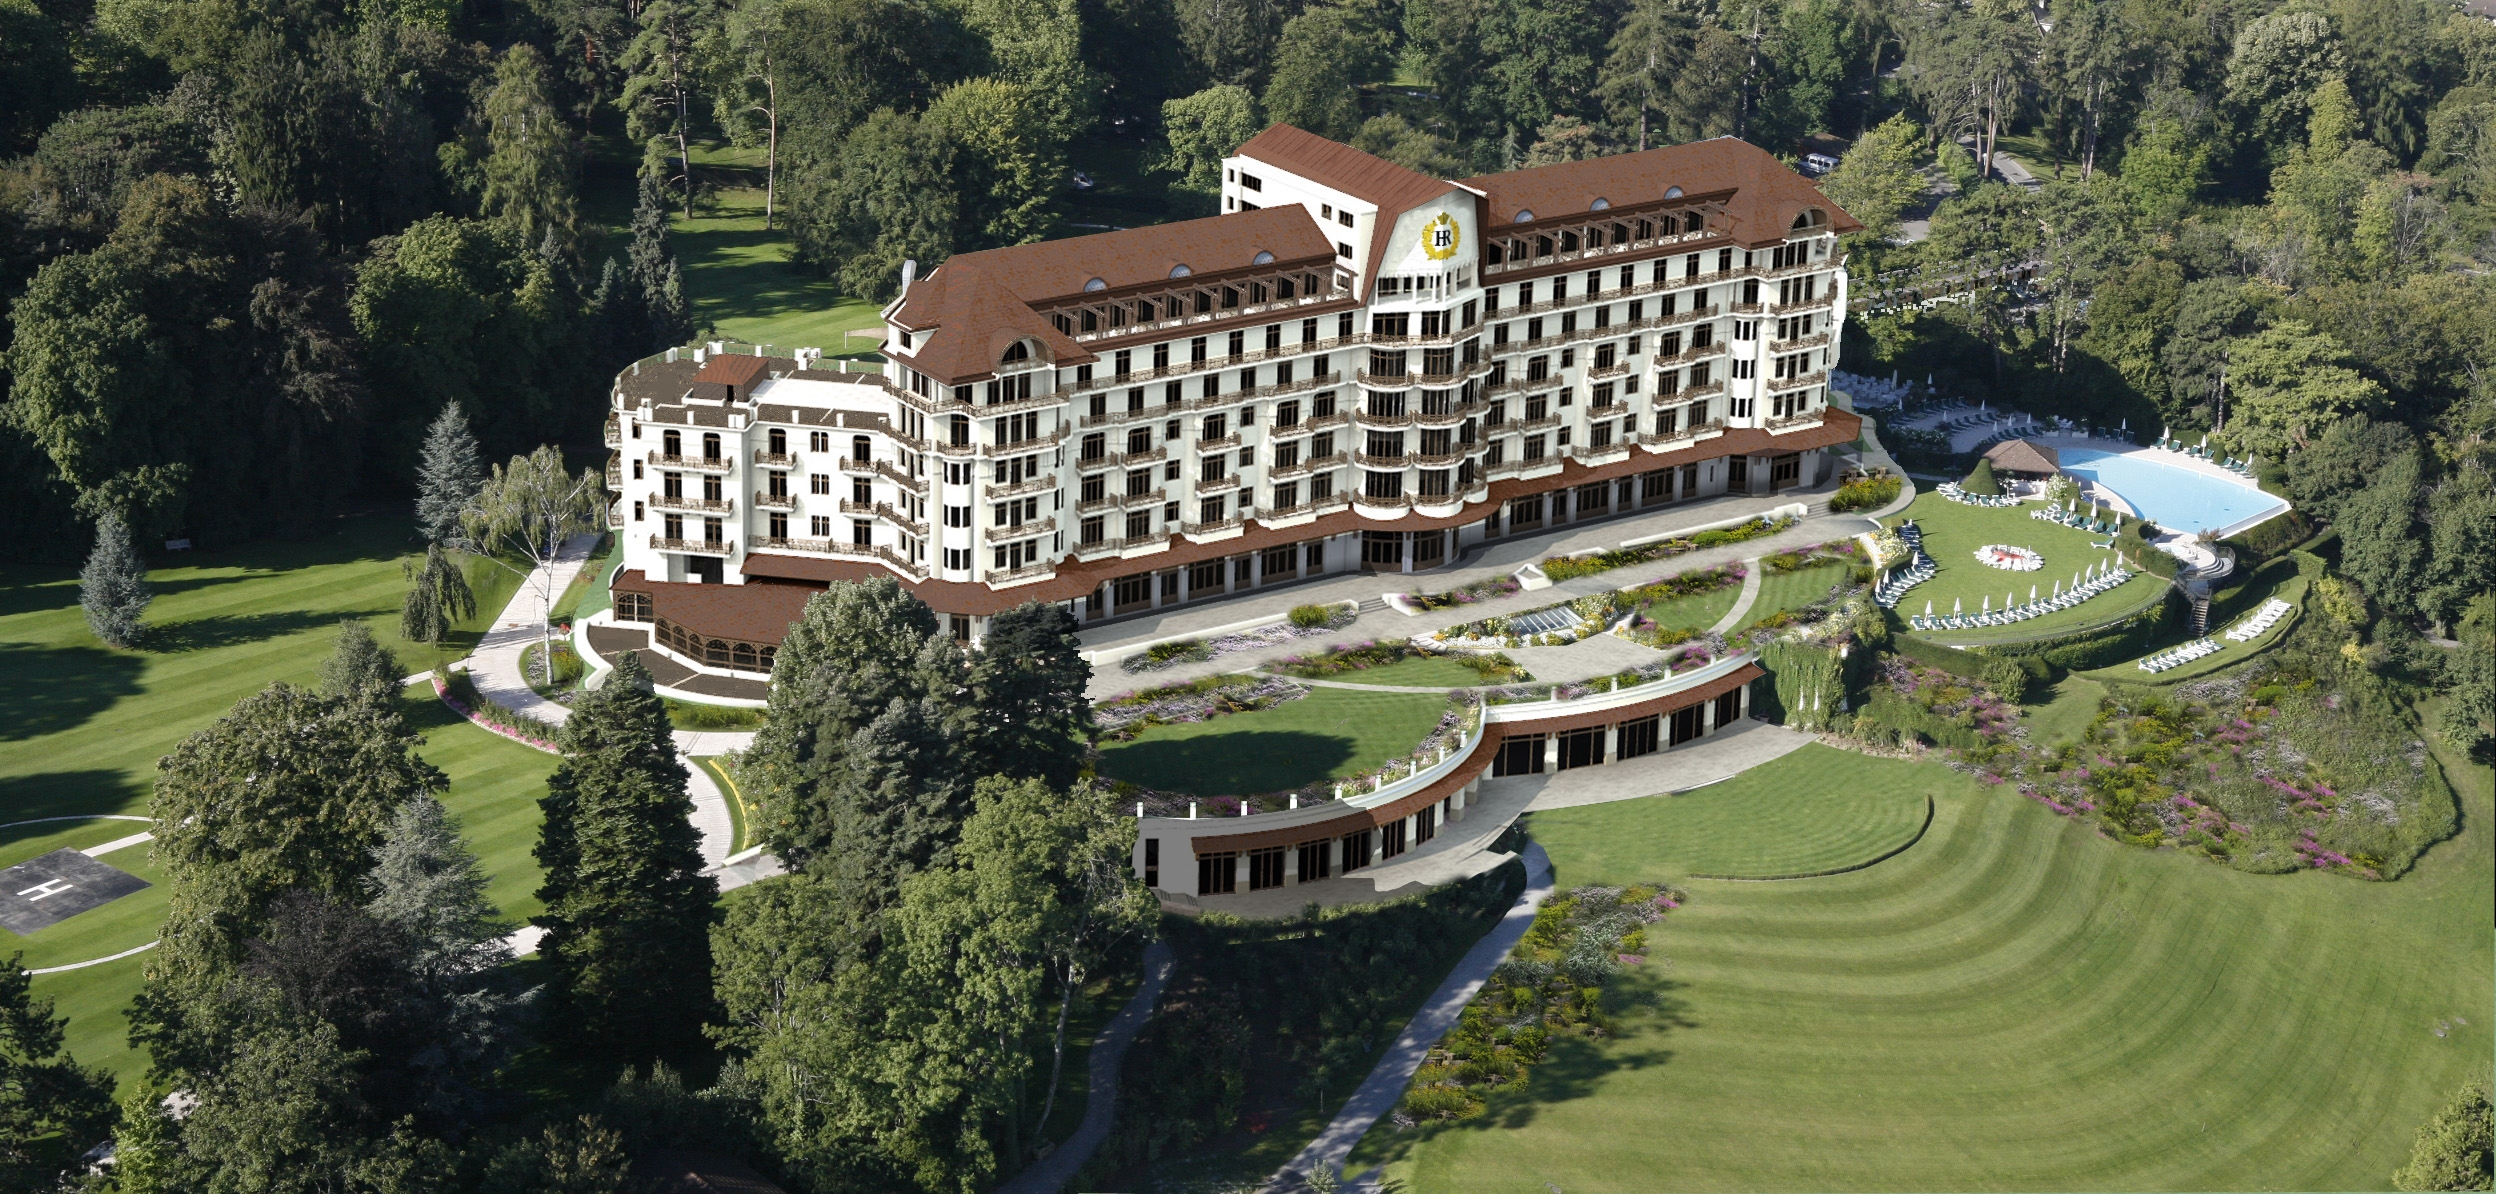 L h tel royal d evian rouvrira le 1er juillet 2014 apr s for Hotels evian